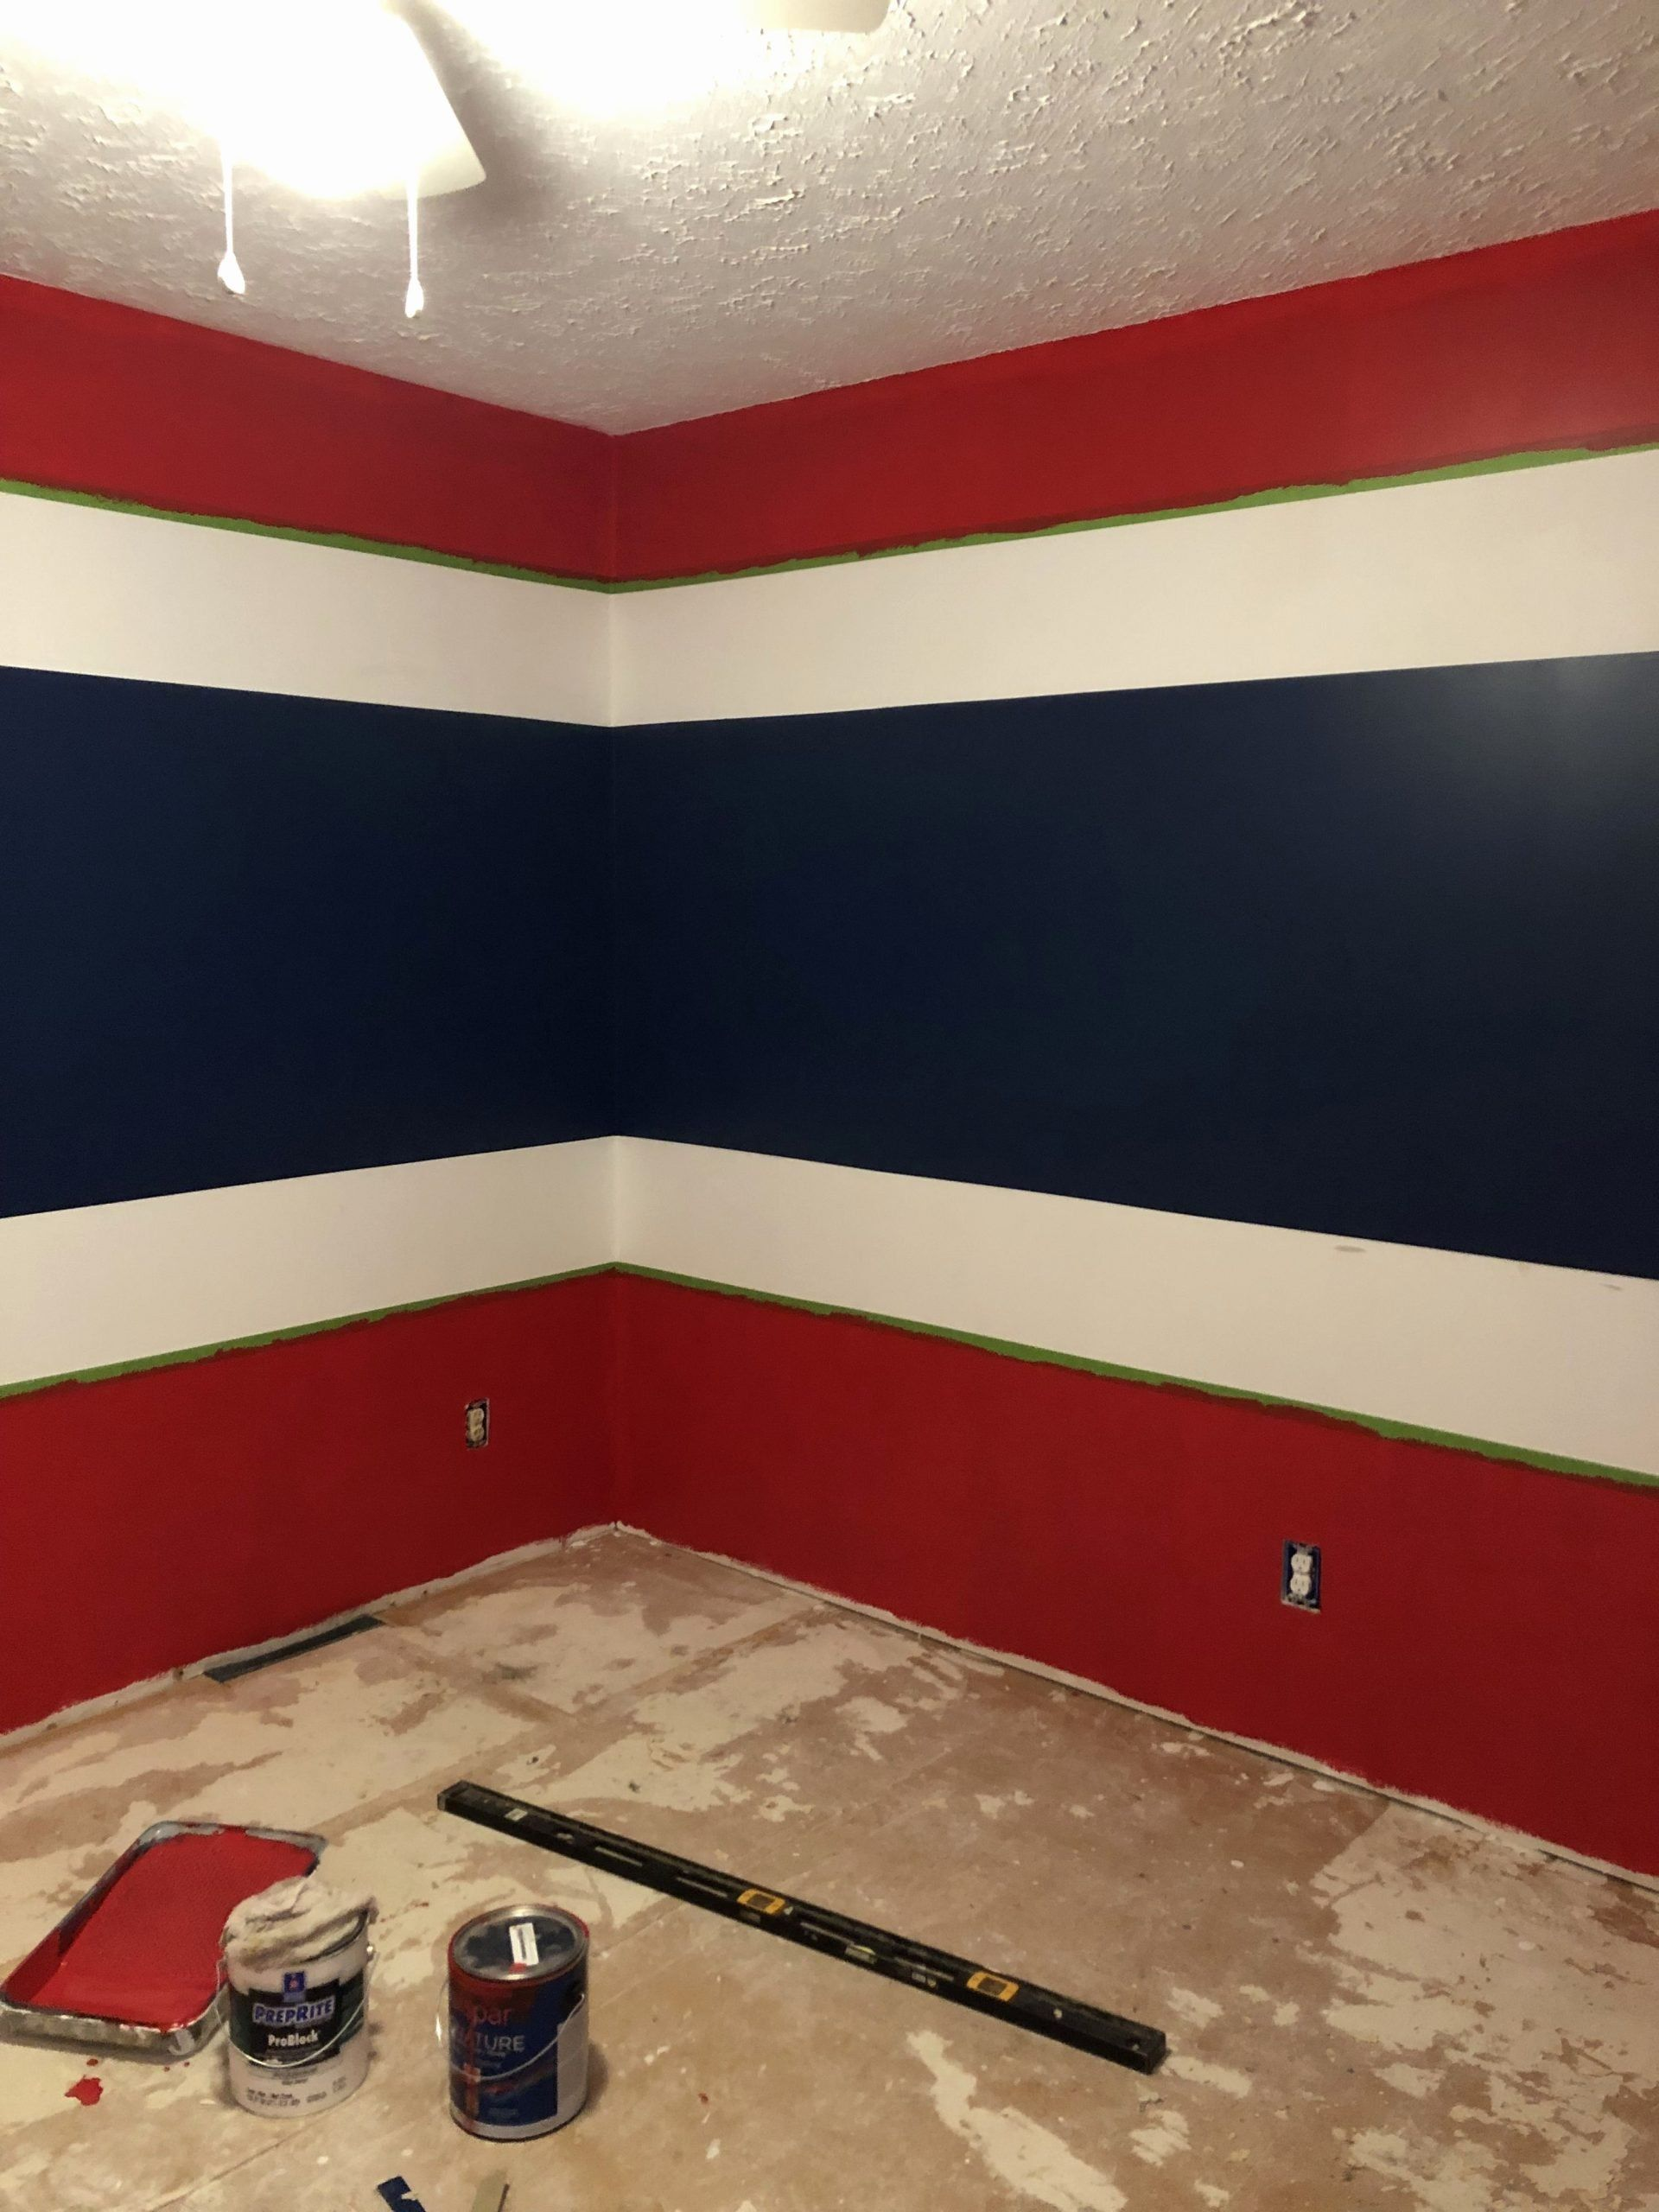 Red Bedroom For Boys Inspirational Red White And Blue Bedroom Simping Best Red Boys Bedroom Boys Blue Bedroom Decor Blue Room Paint